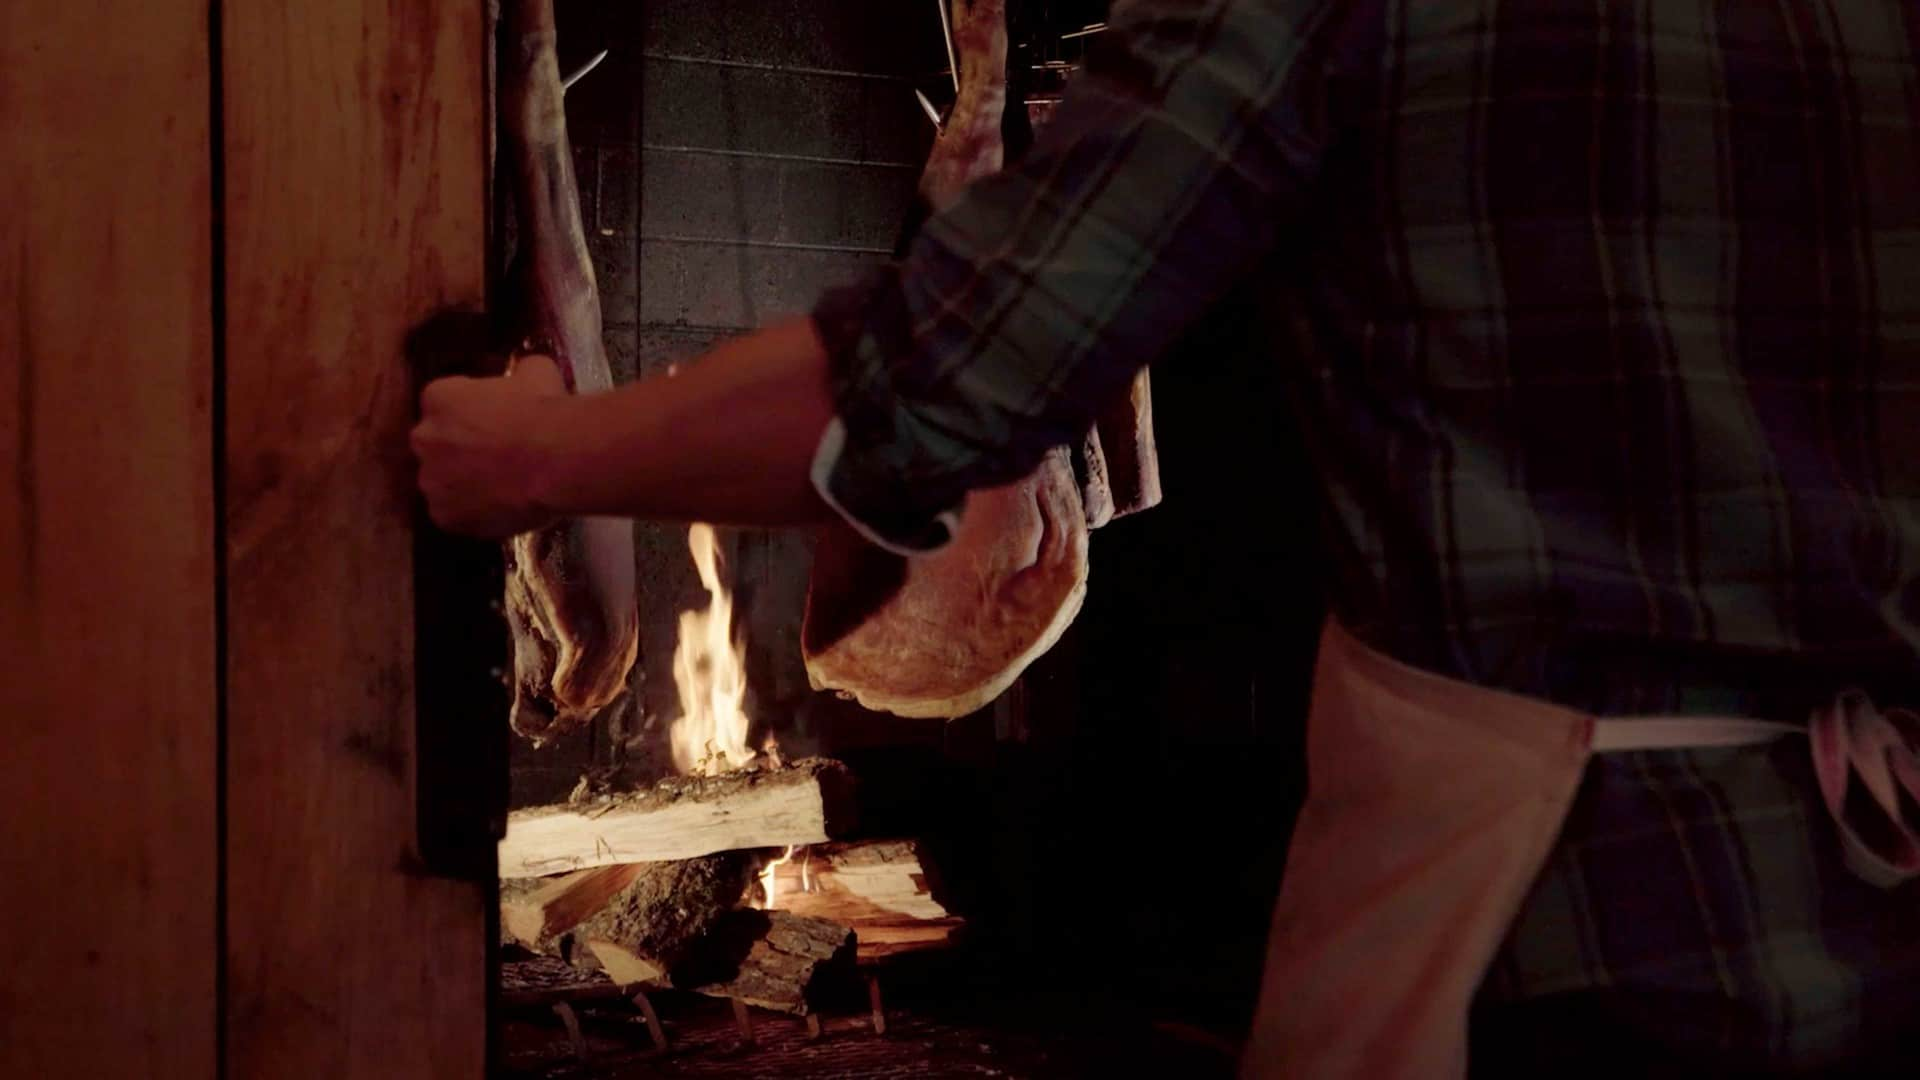 Prime Cuts: Outdoor Cooking Series Trailer